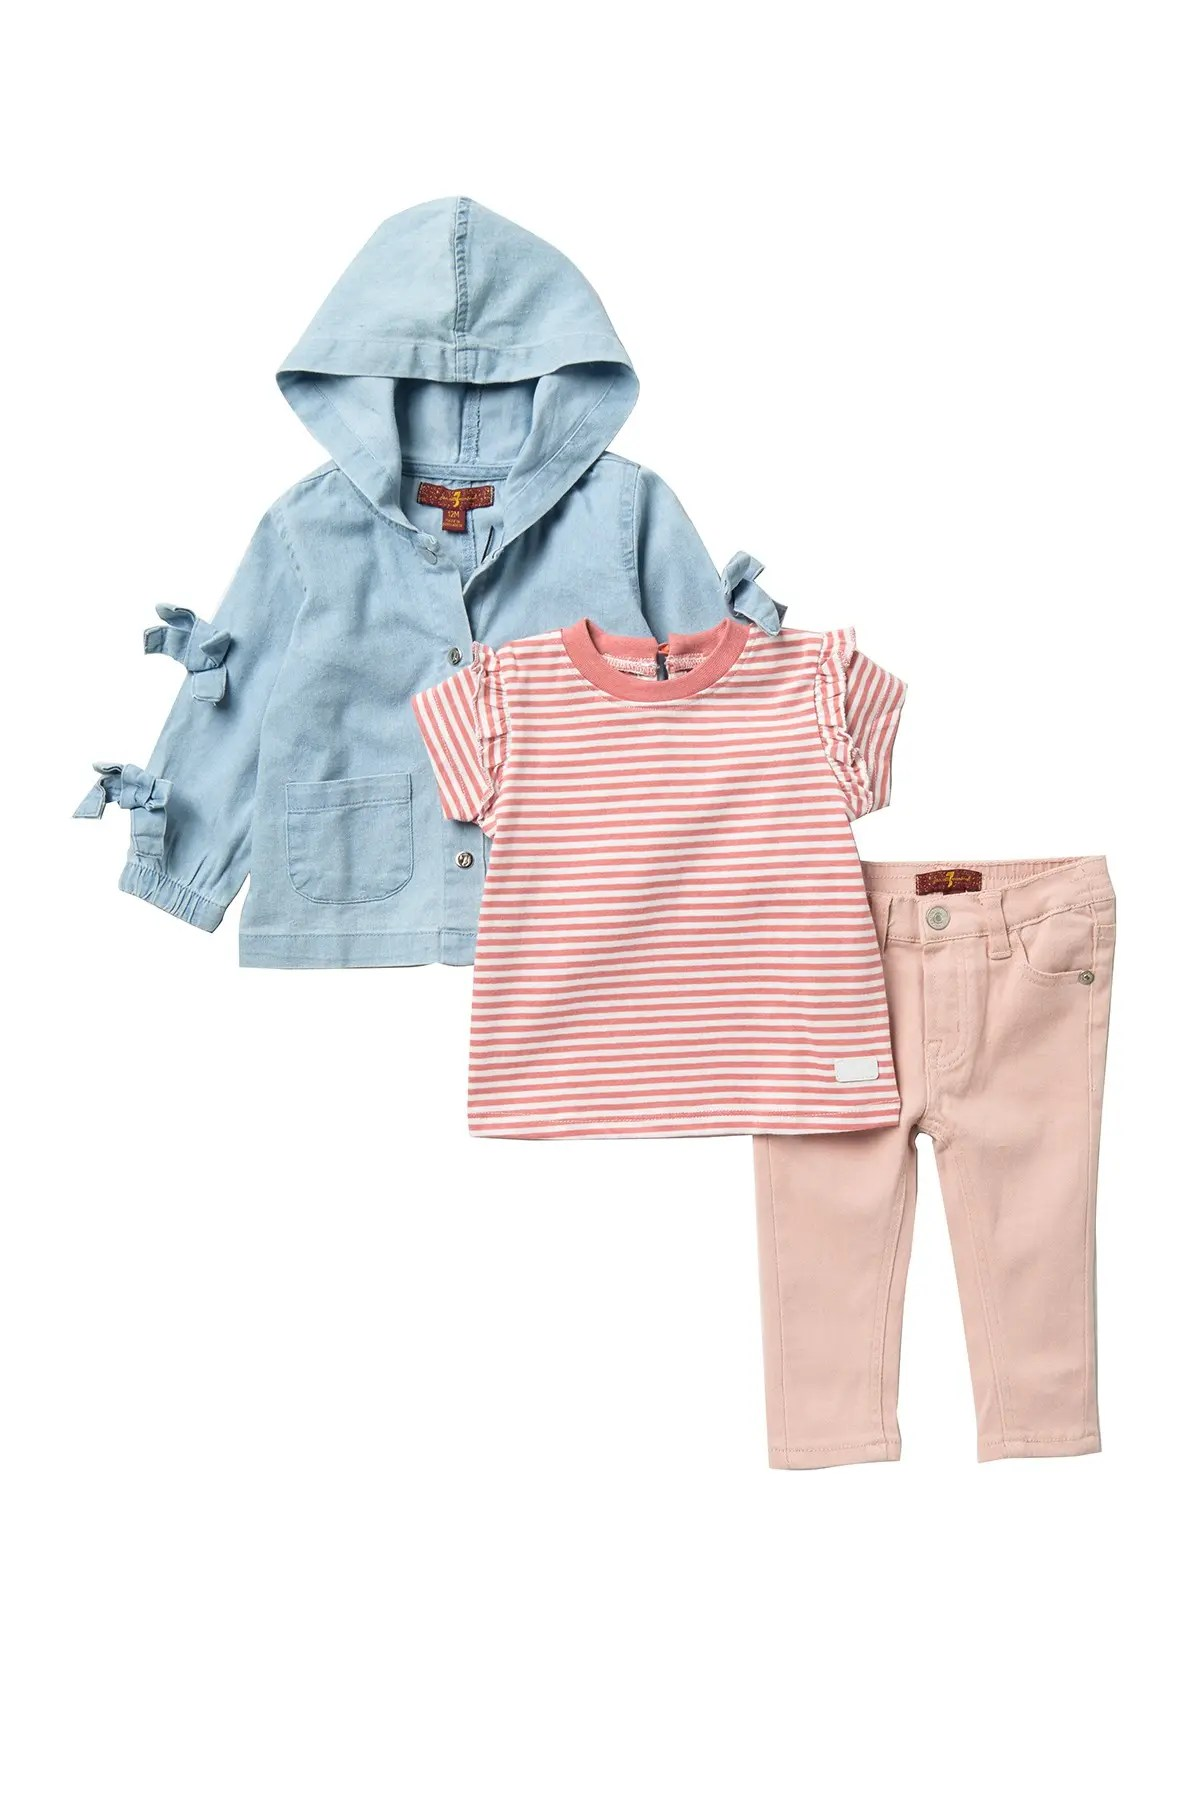 7 for all mankind chambray jacket top pants set nordstrom rack